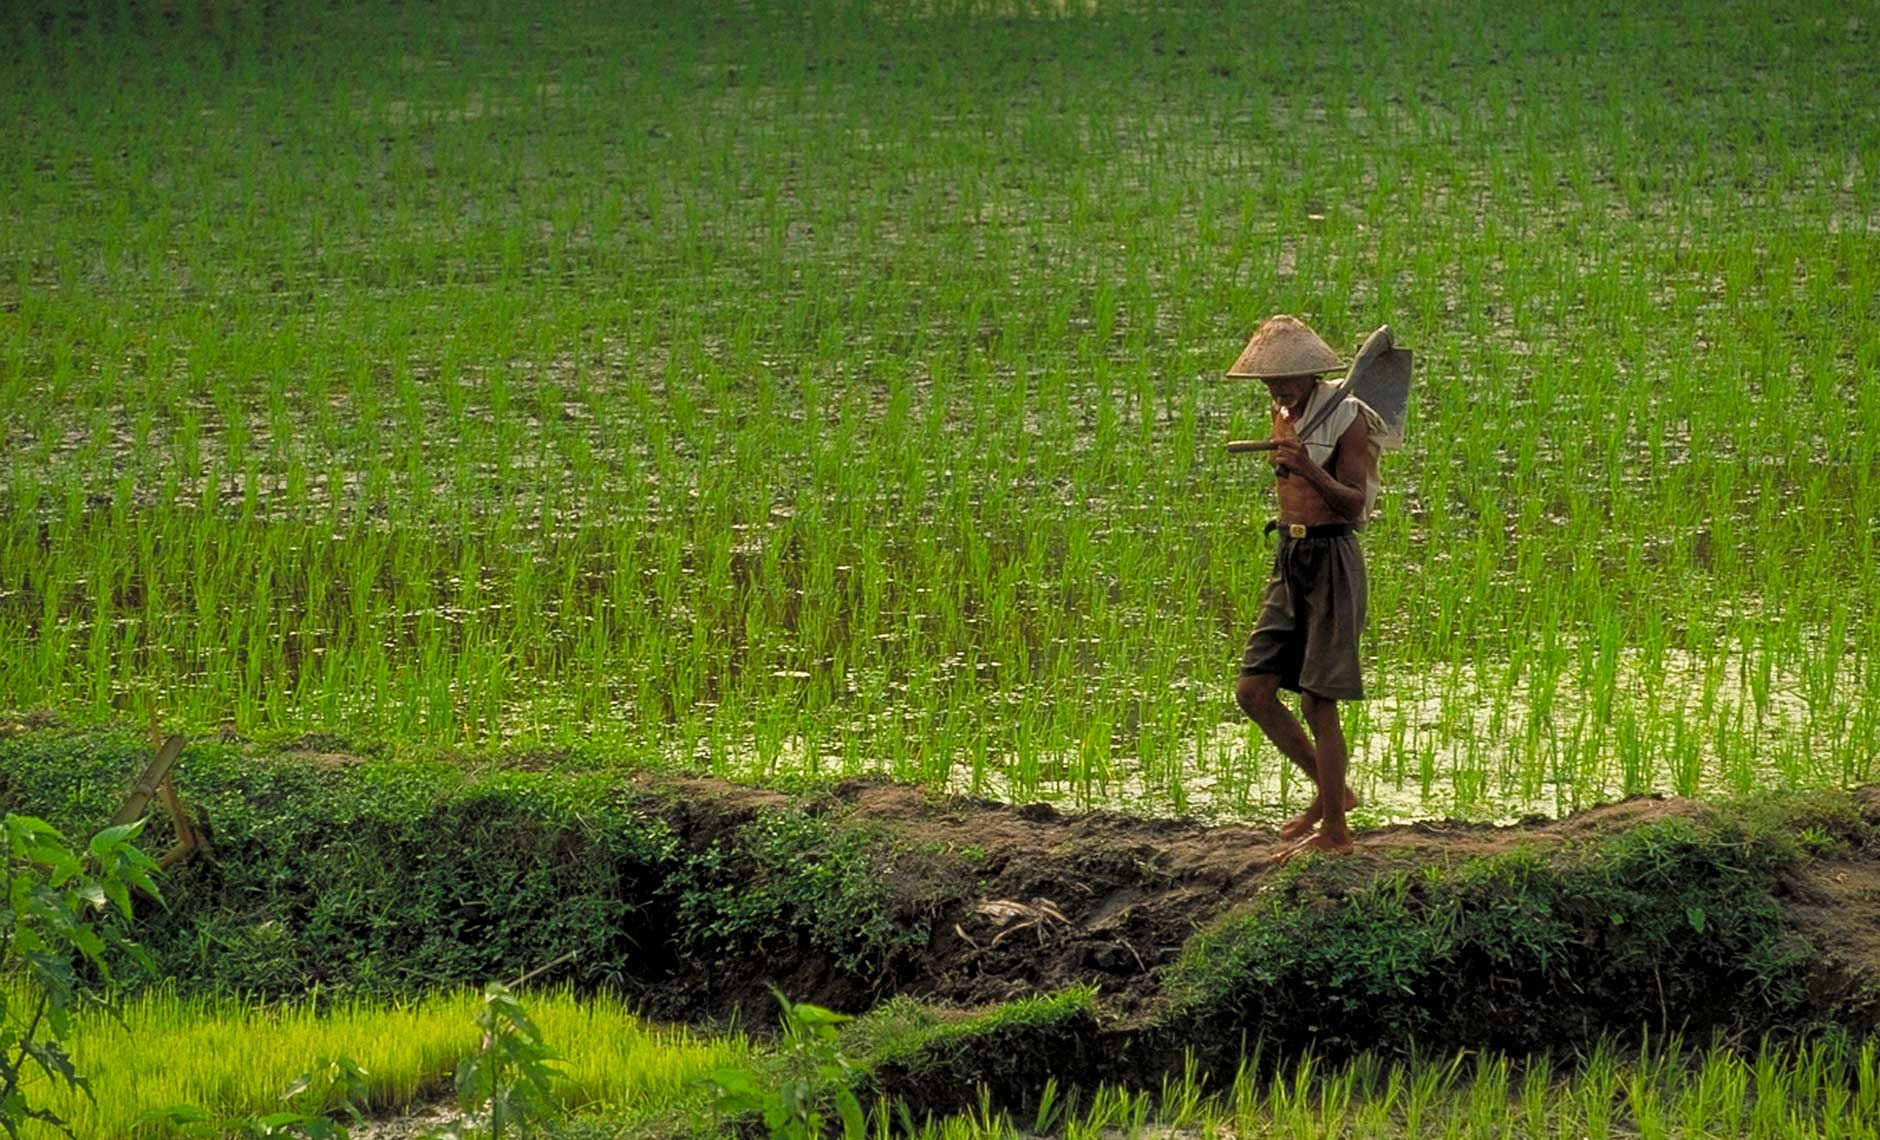 Rice Farmer with shovel in Indonesia